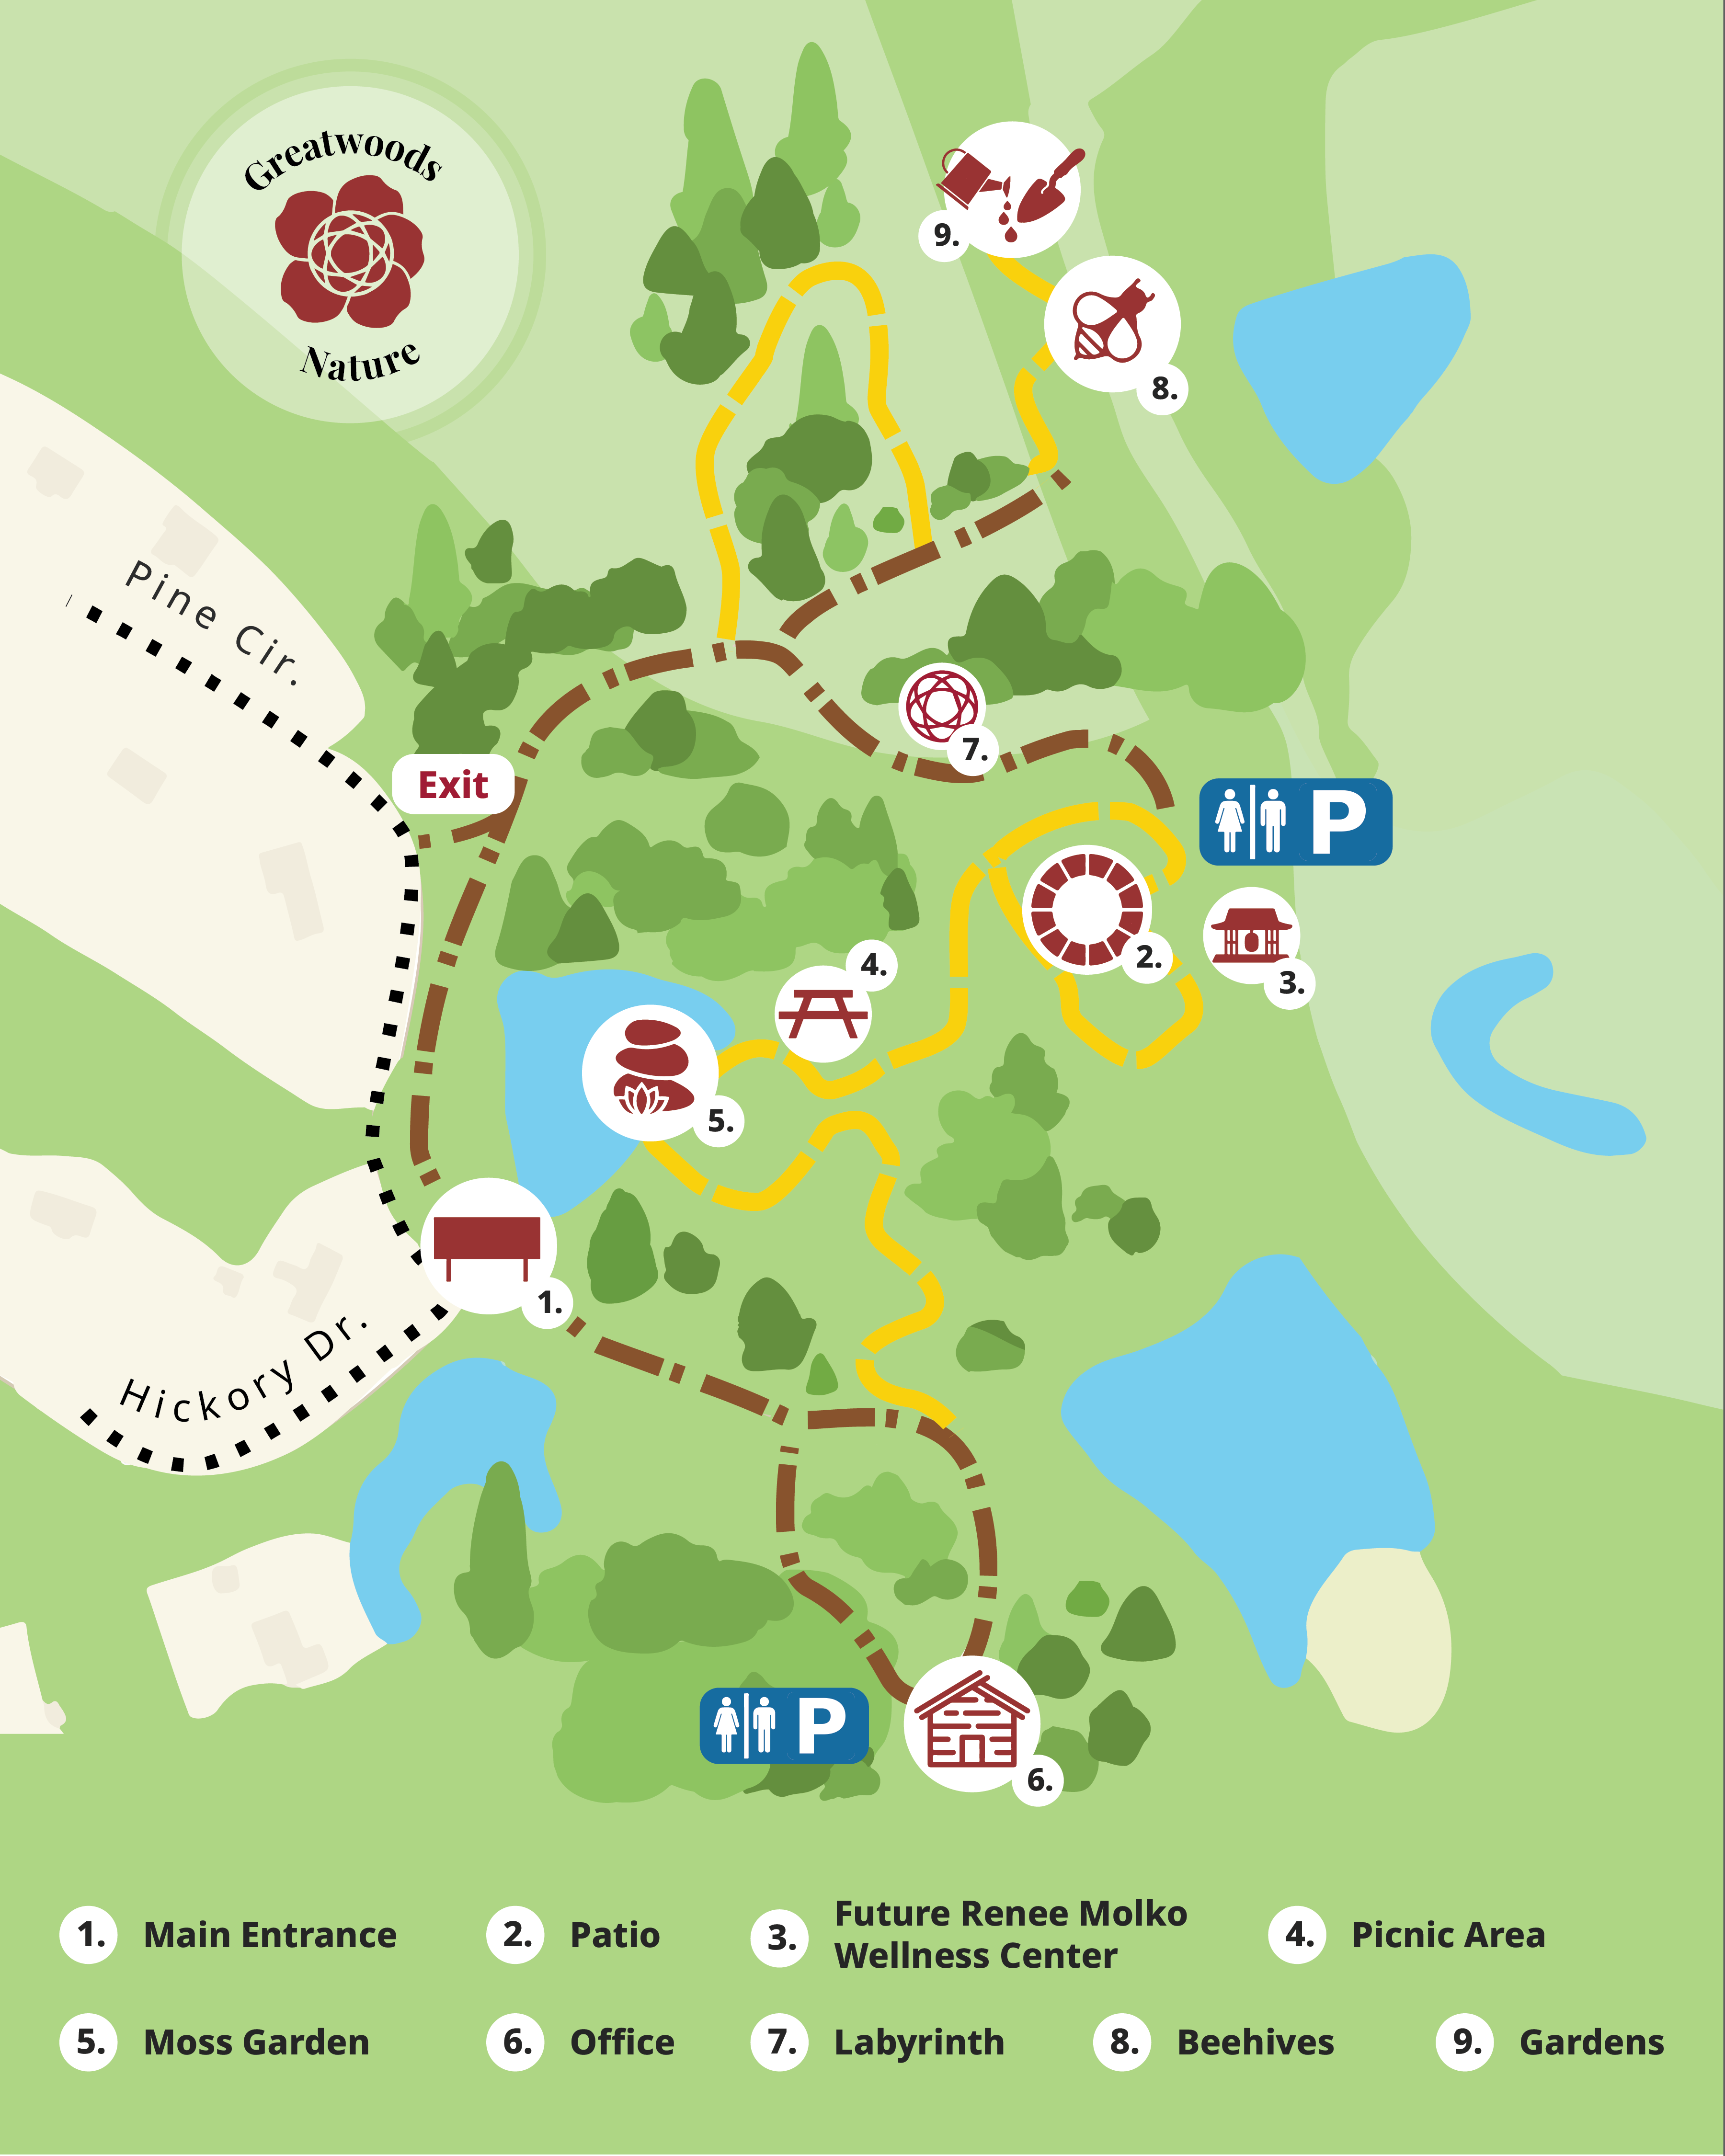 greatwoods nature map